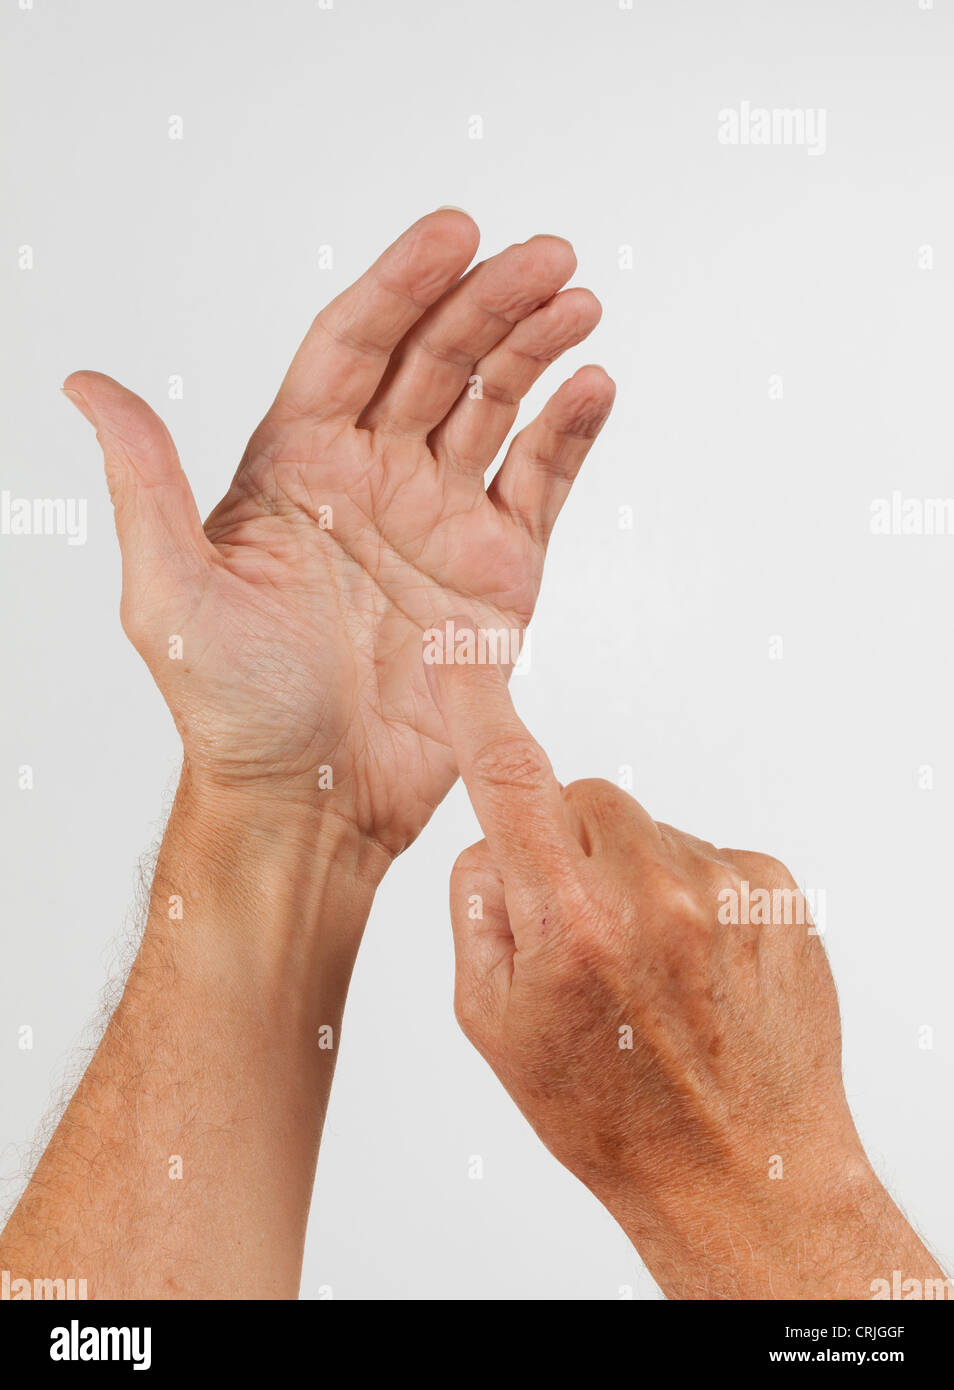 Concept showing an empty hand as if it was holding a phone and pressing keys on screen of smartphone - Stock Image